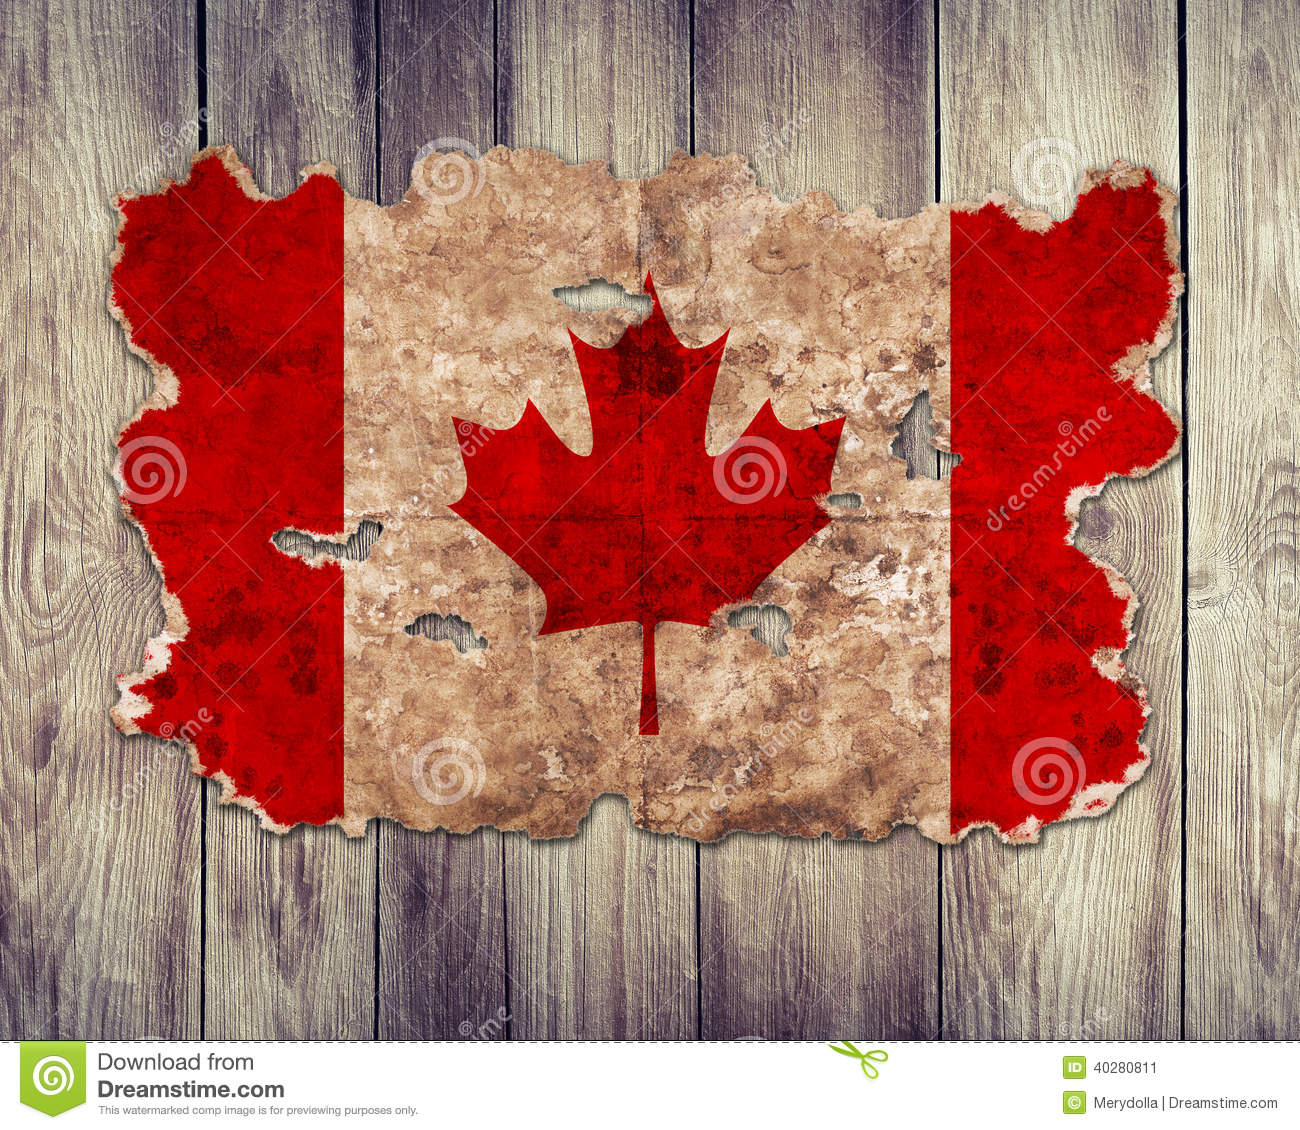 Stock Image Canada Flag Form Torn Vintage Paper Wooden Background Image40280811 in addition Caravan Hire Expanda Outback together with Stock Photography Kitchen Weight Scale Diversity Fruit Image21103532 besides Stock Photography Stevia Rebaudiana Over White Image25343452 as well Royalty Free Stock Photo House Keys Real Estate Housing Floor Plans Image20277875. on floor plan paper